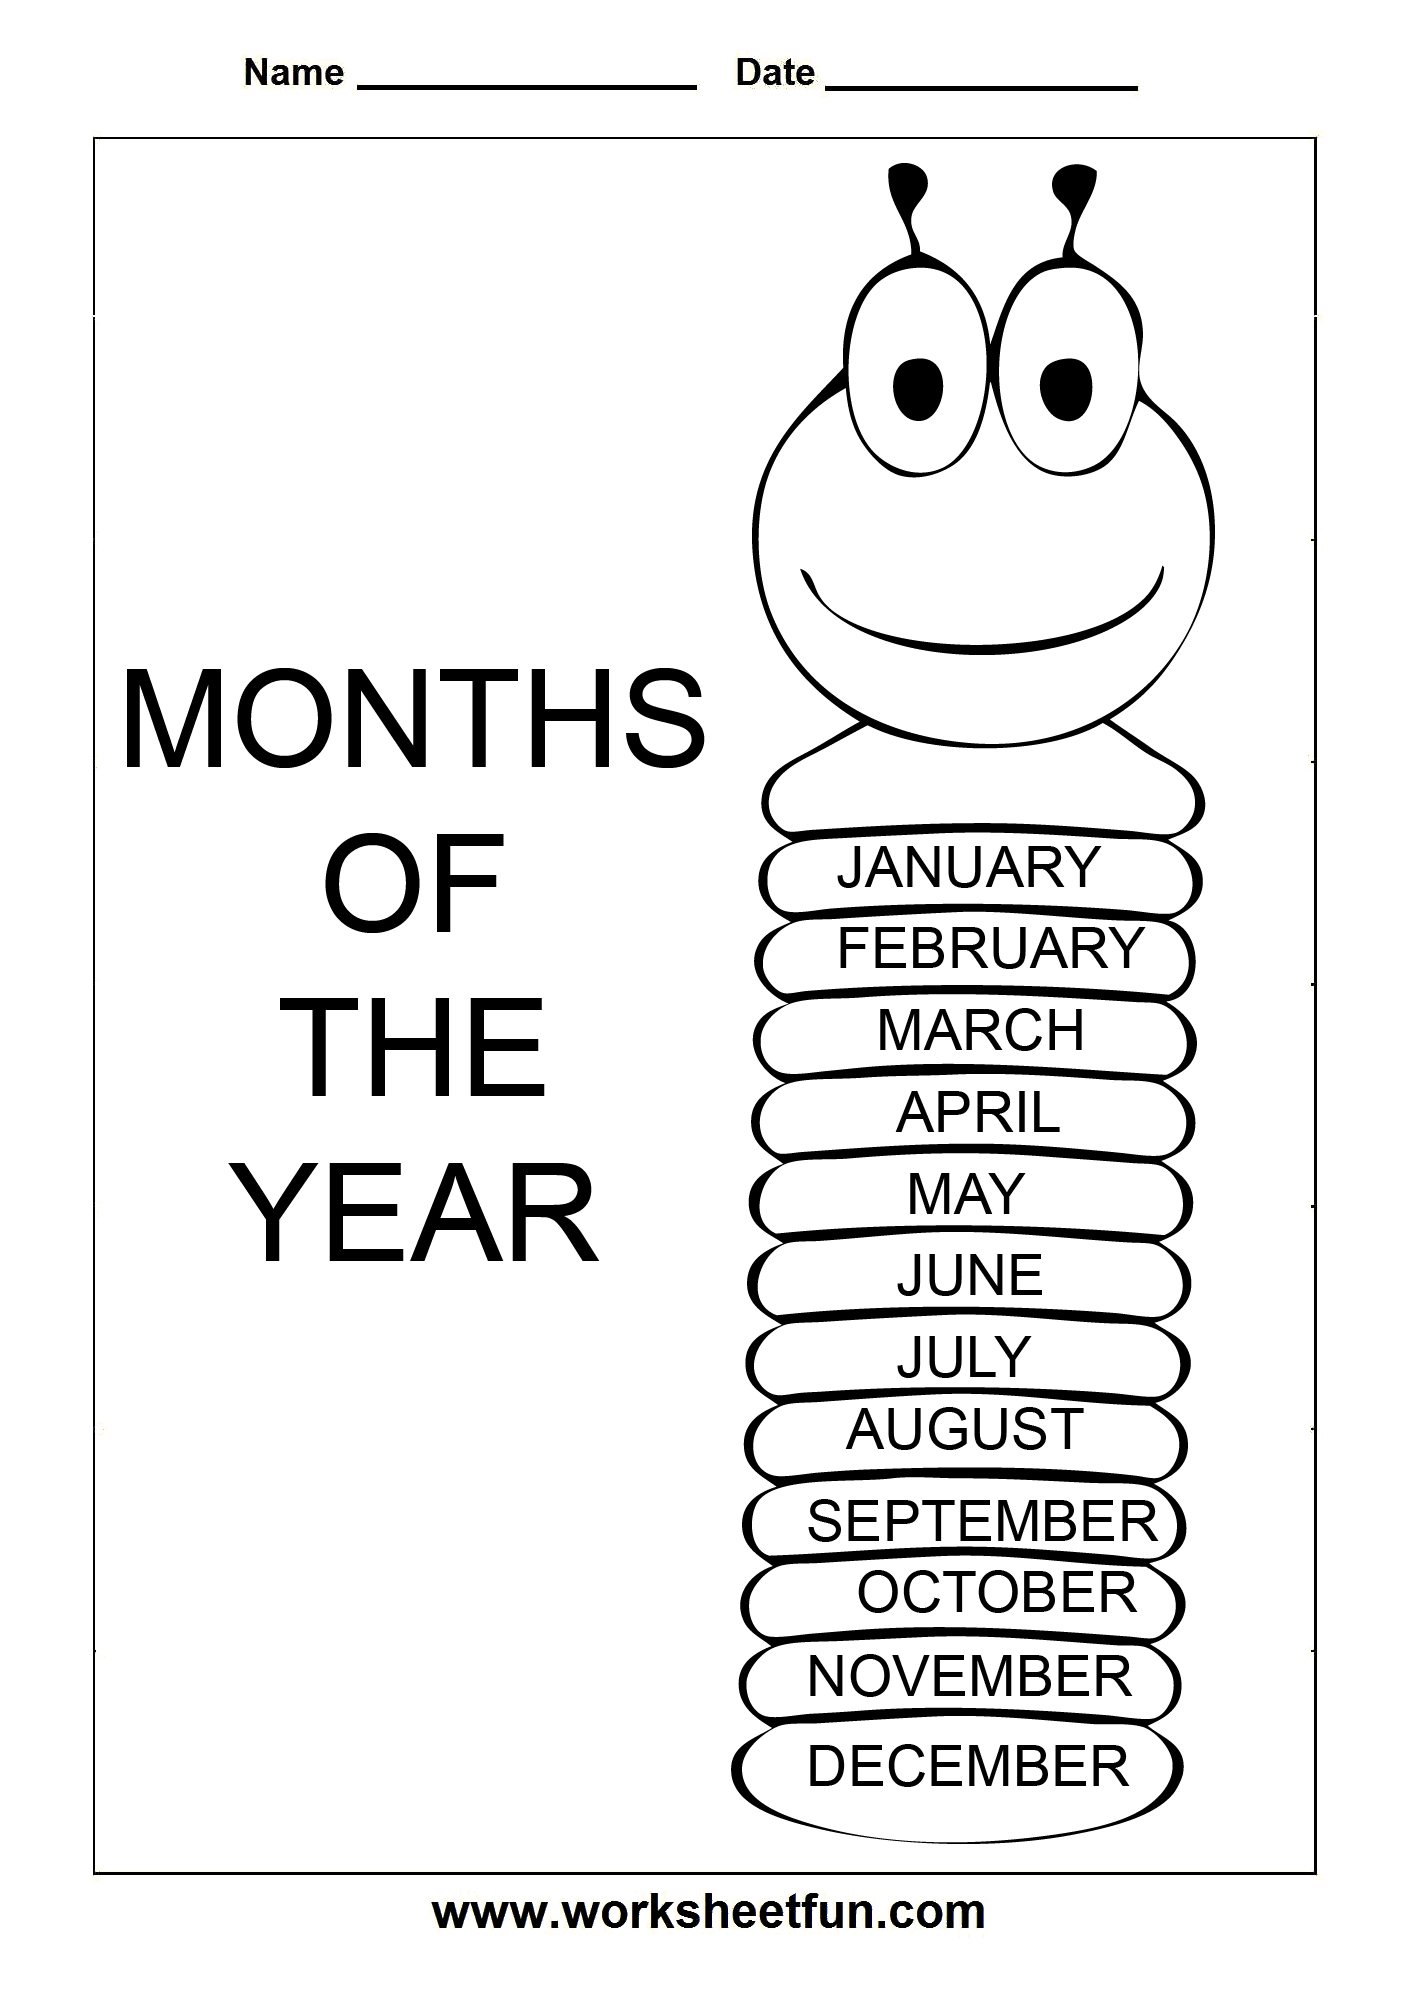 Worksheet : Months Of The Year Free Printable Worksheets L Spelling - Free Printable Spelling Worksheets For Adults